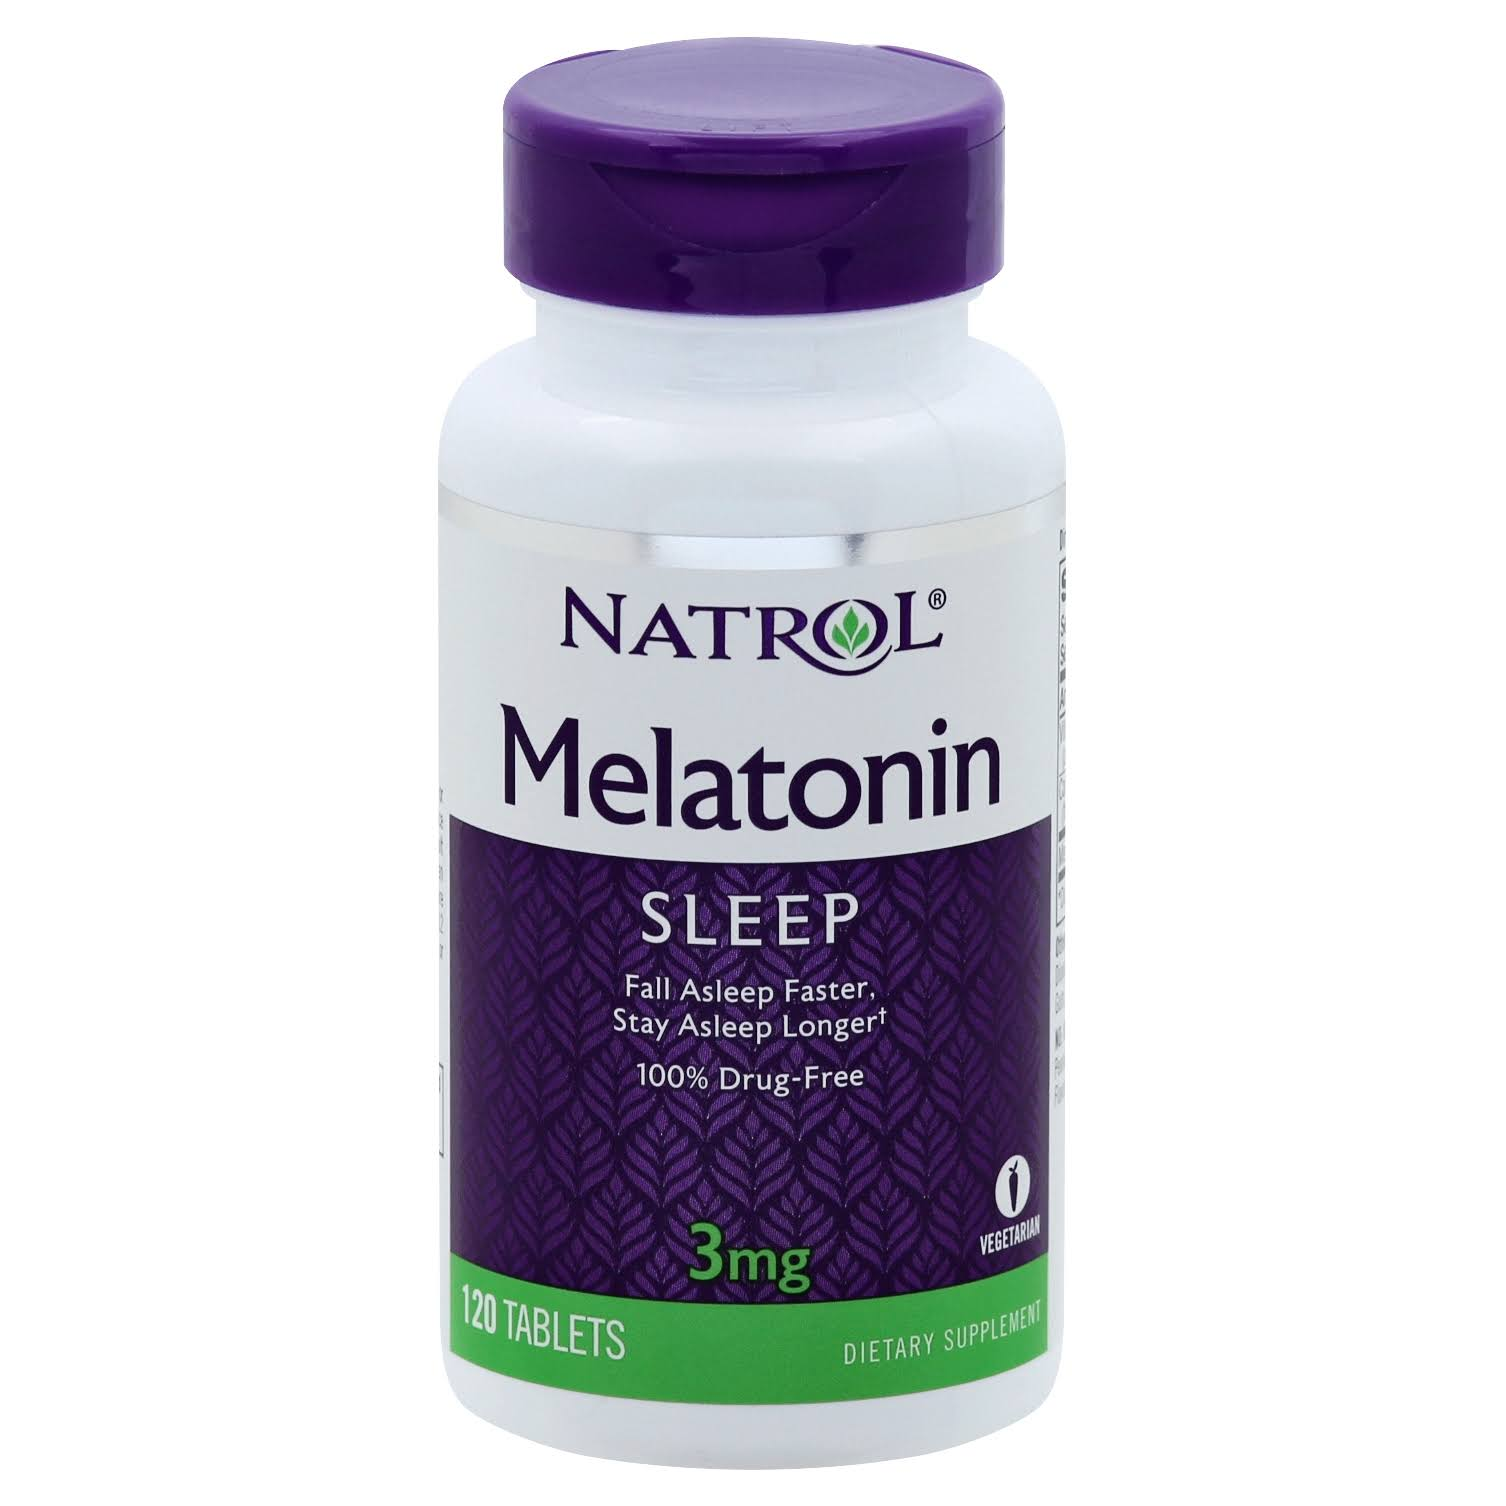 Natrol Melatonin 3mg Dietary Supplement Tablets